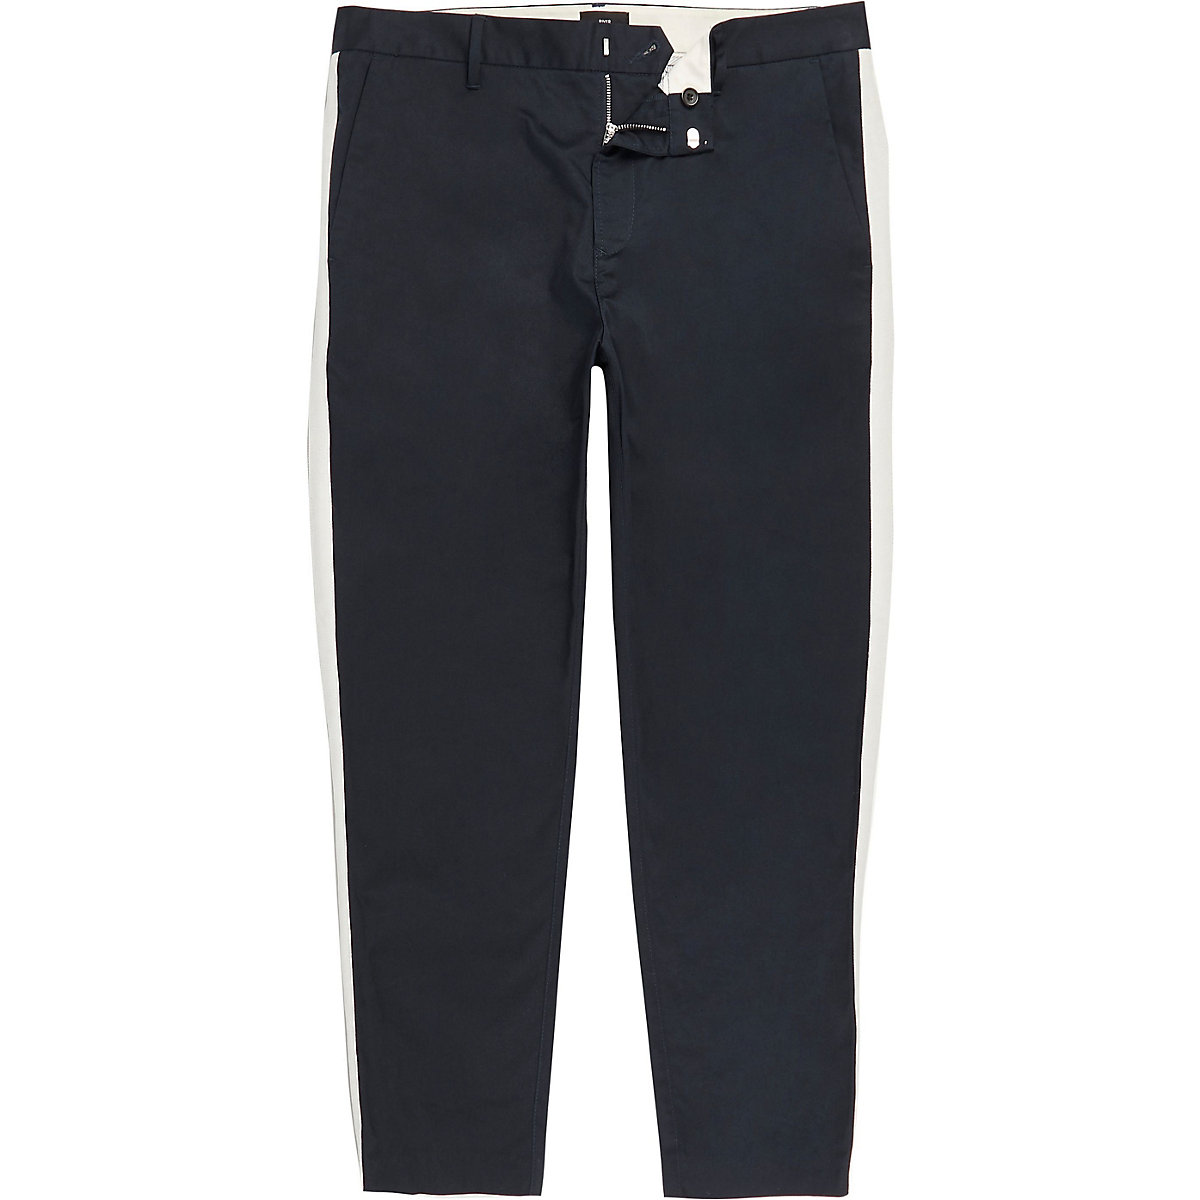 Big and Tall navy skinny taped pants